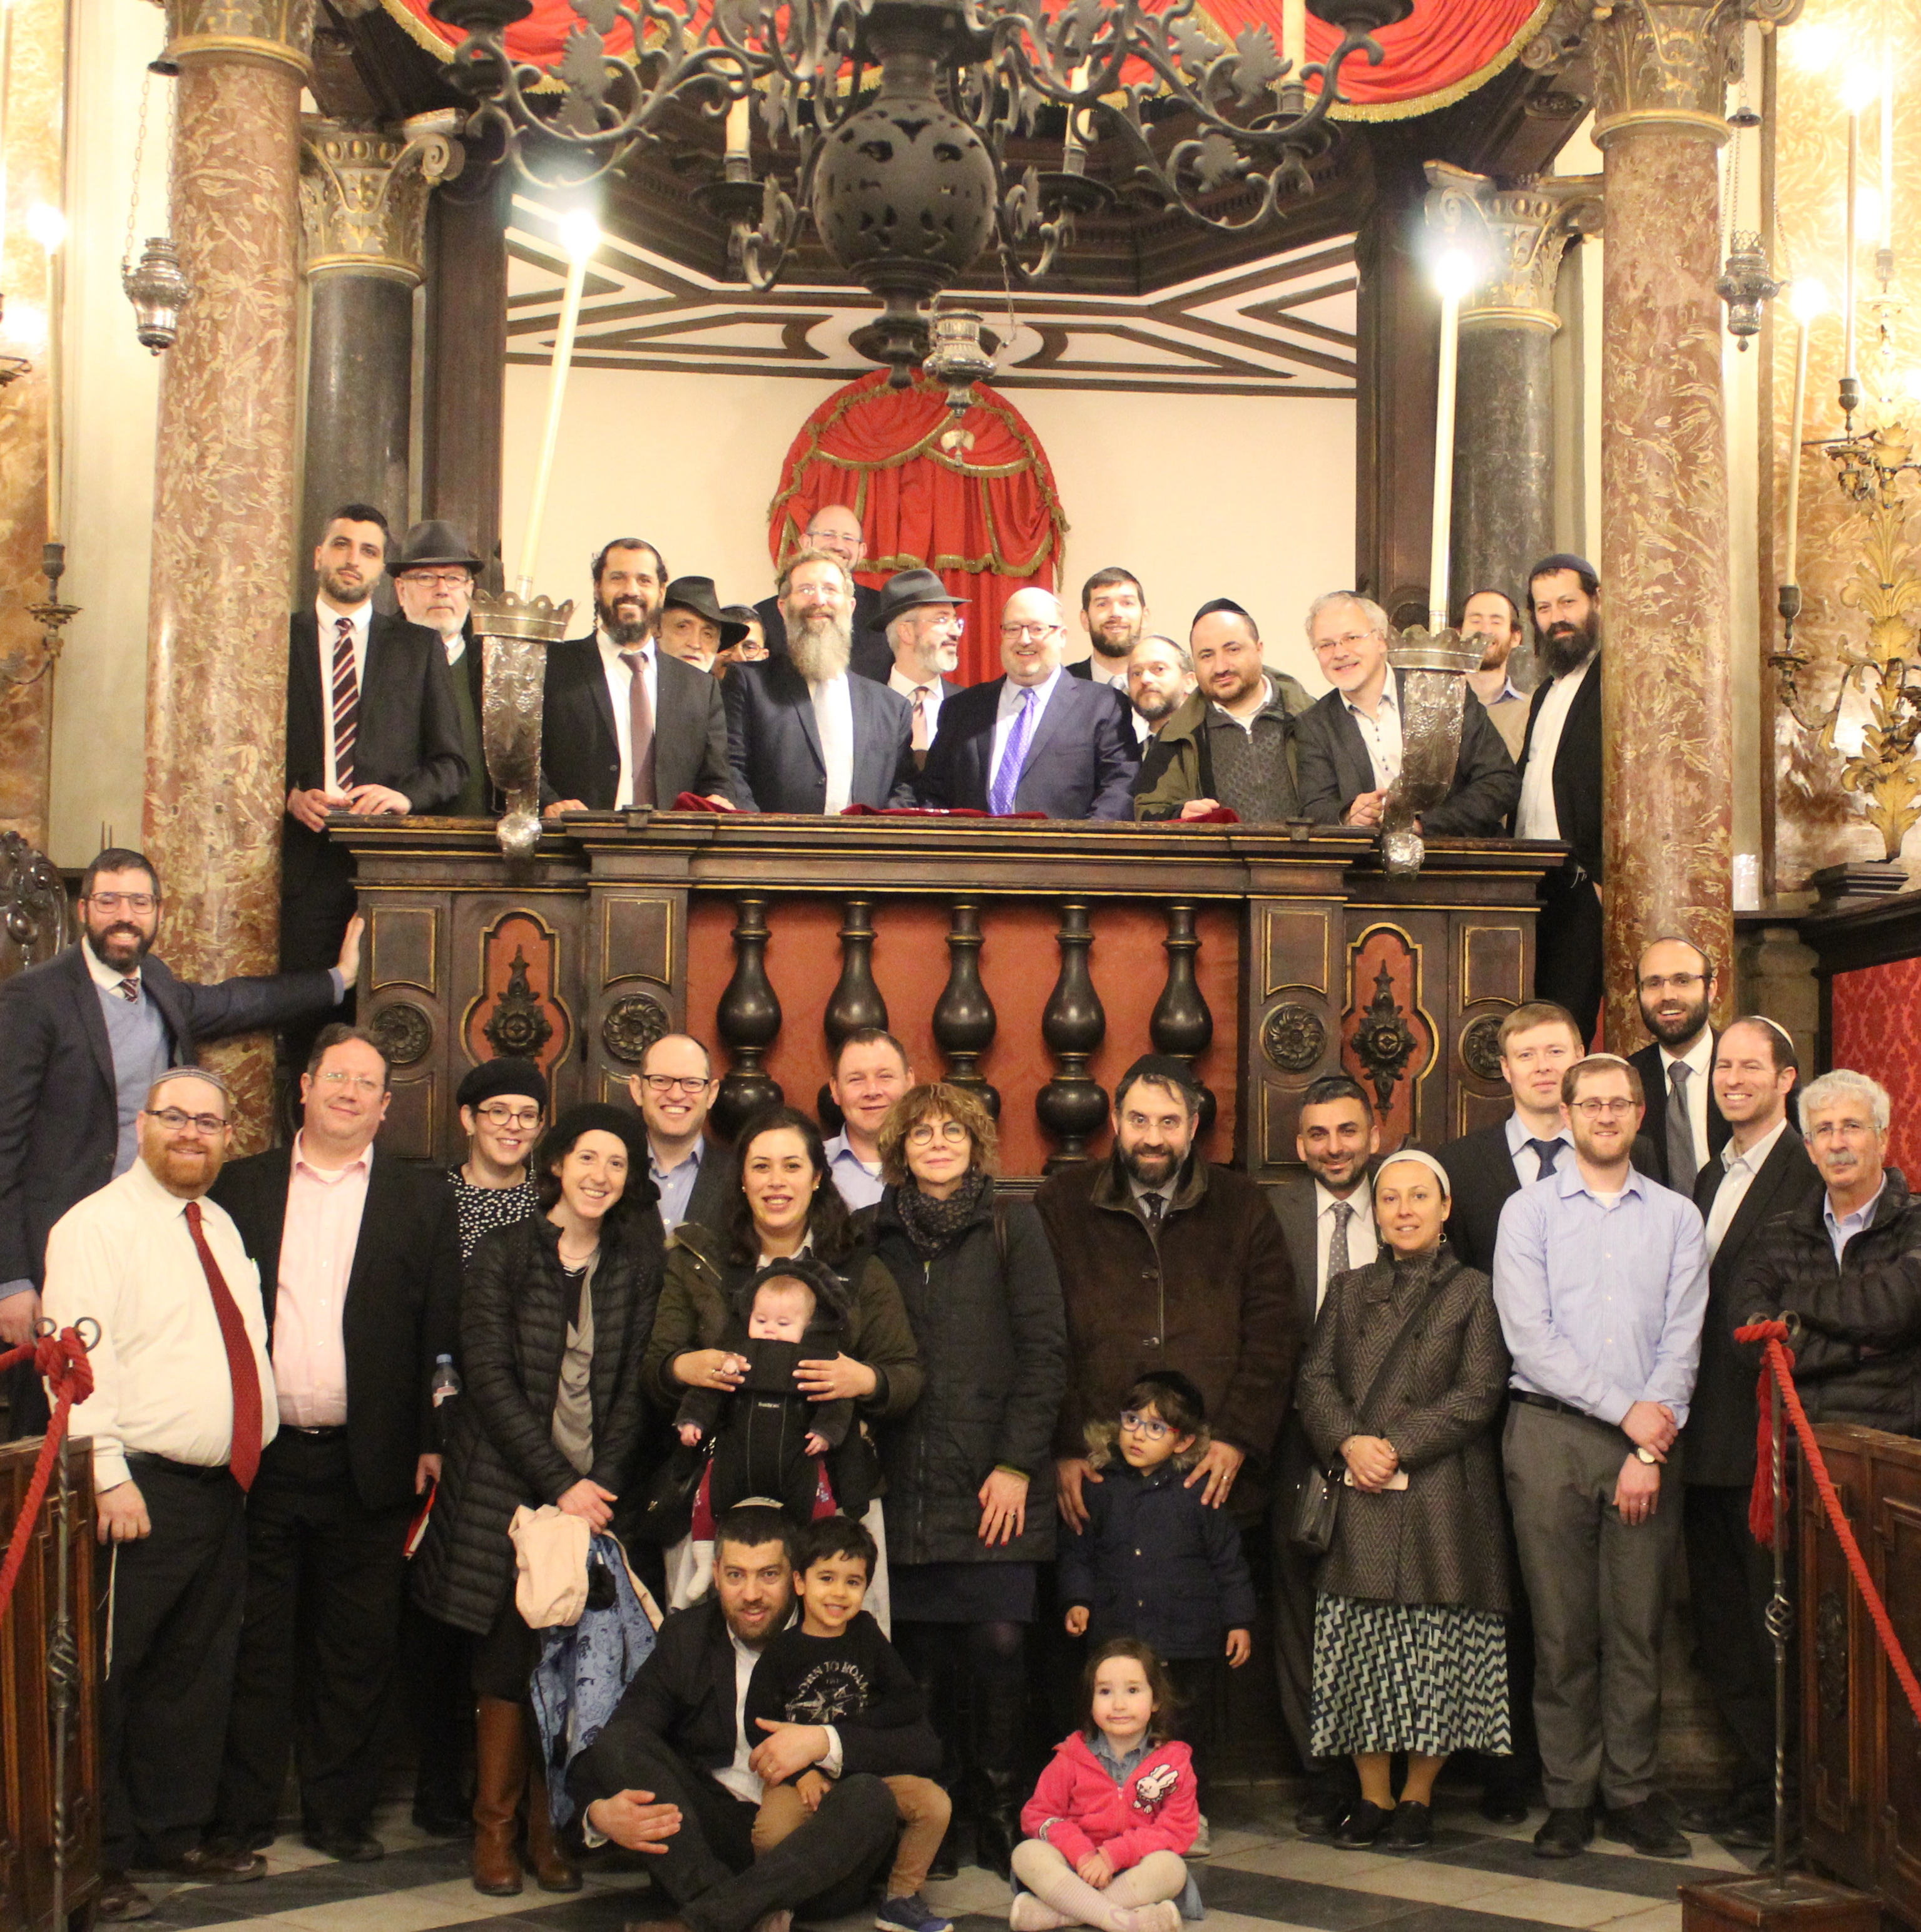 Venice conference in Venice Museum synagogue